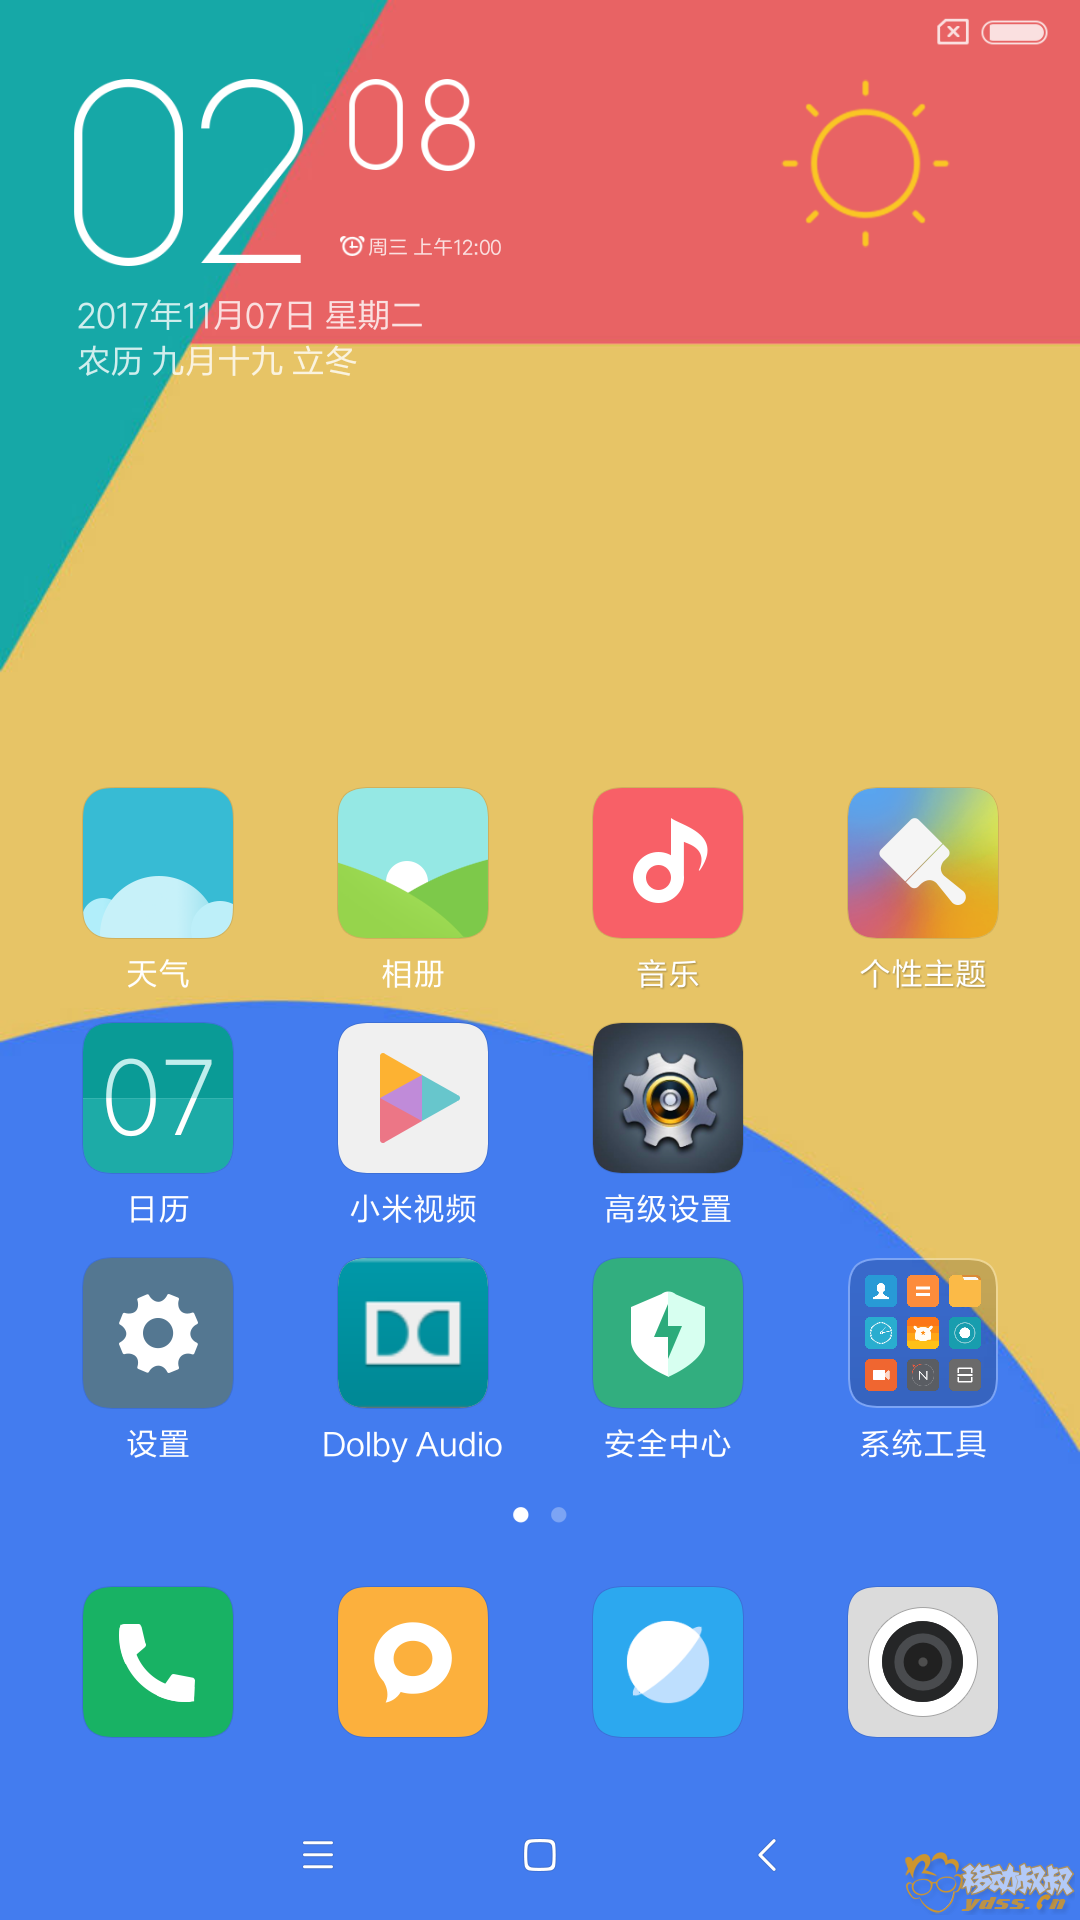 Screenshot_2017-11-07-14-08-18-914_com.miui.home.png